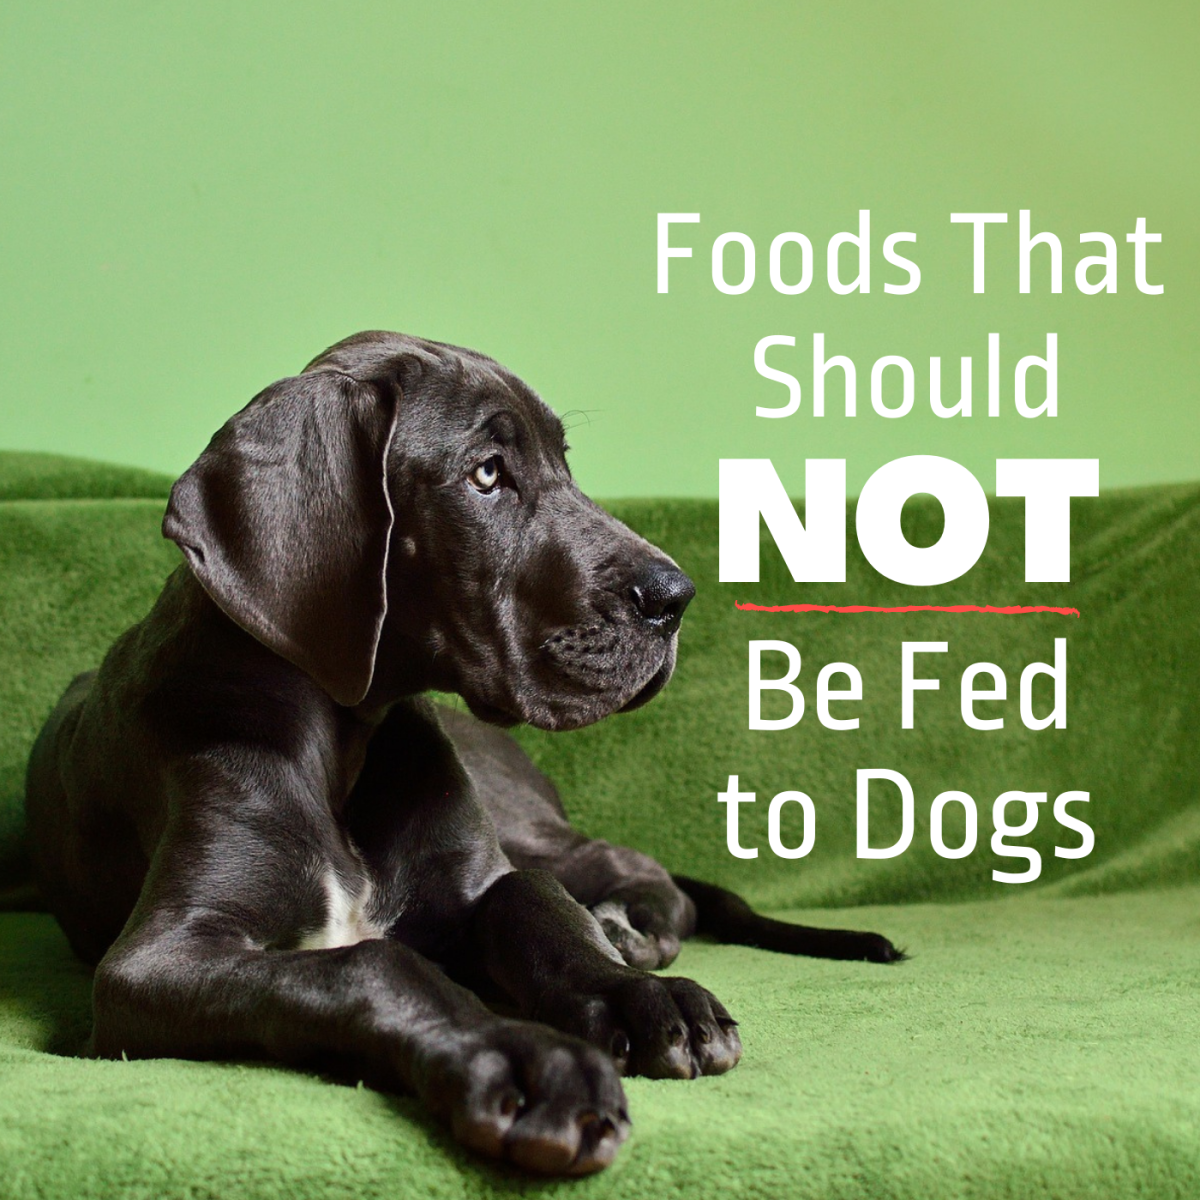 Based on a veterinarian's advice, do not feed your dog these foods.